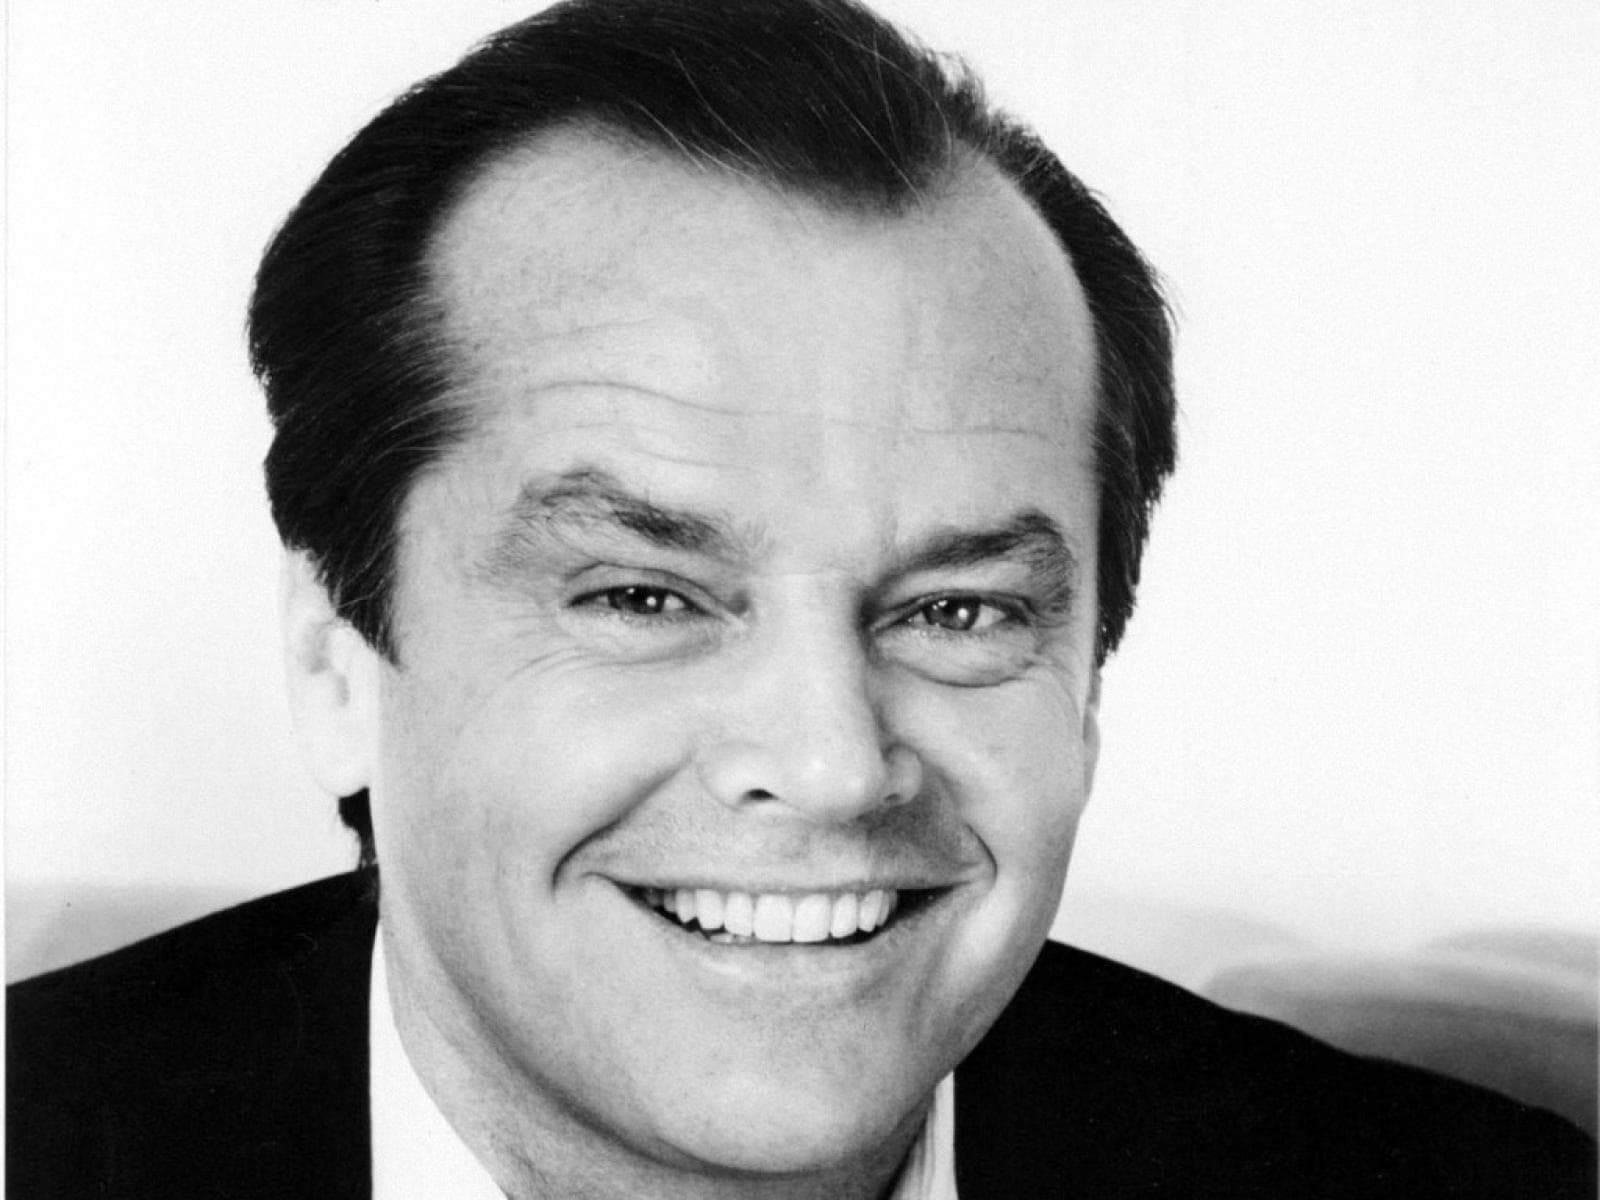 Jack Nicholson Full hd wallpapers